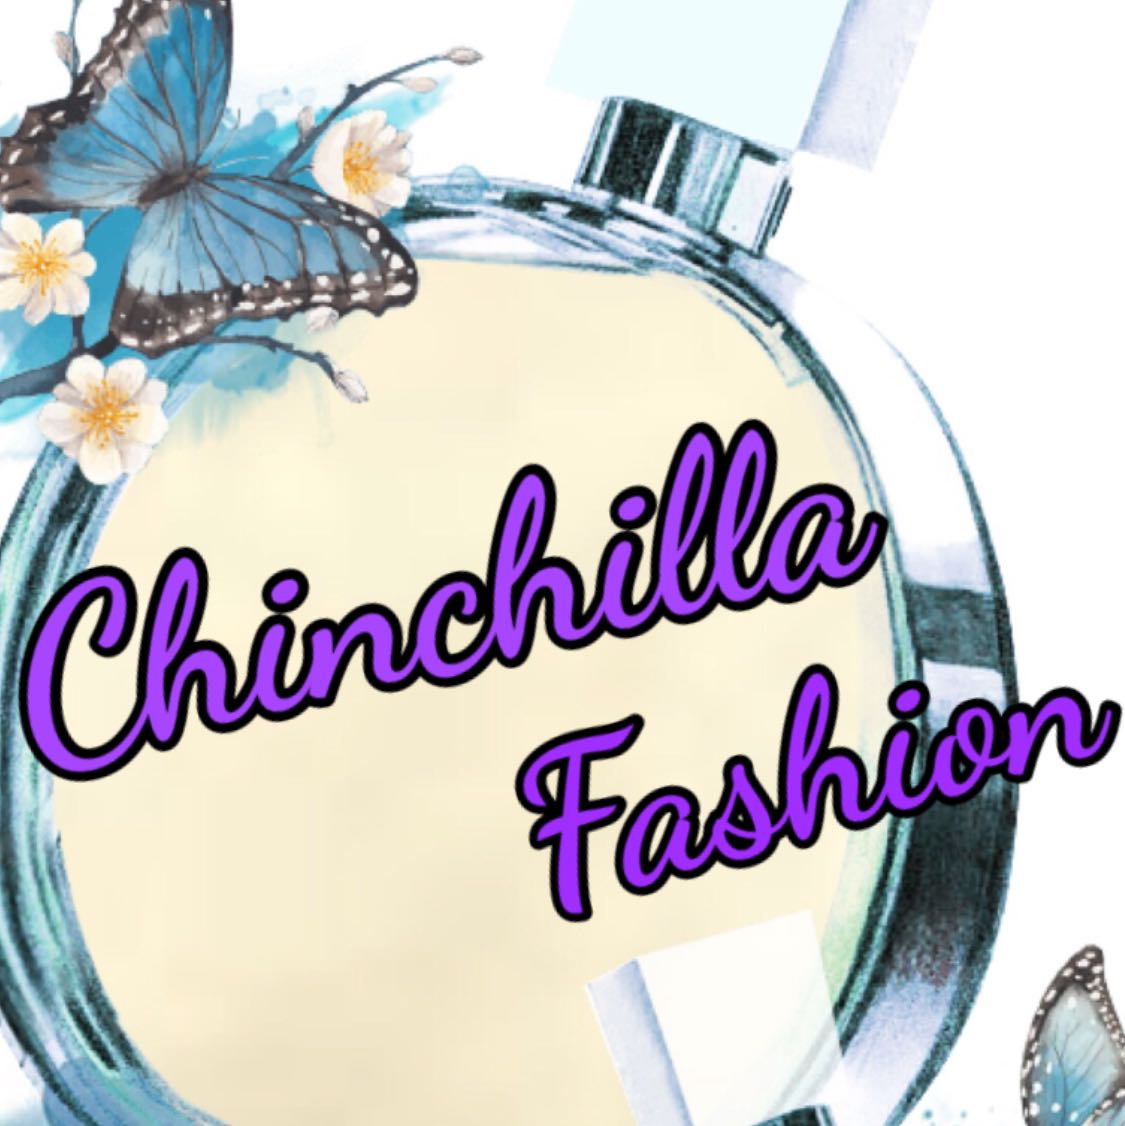 chinchillafashion